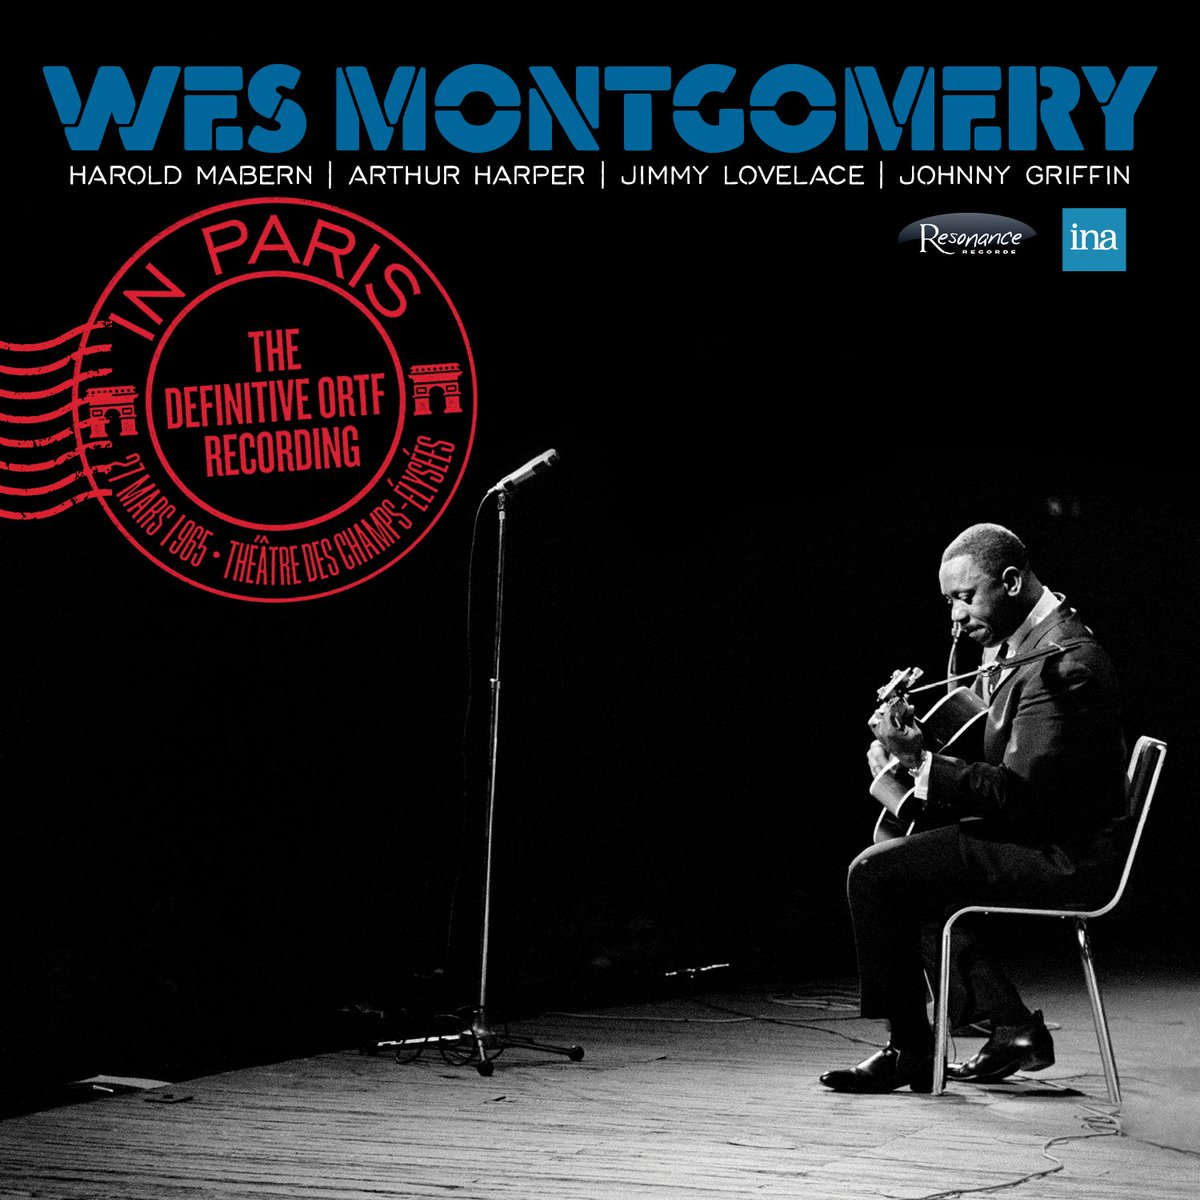 Wes smokin' up the Champs-Elysees in 1965 on this magnificent two-CD set from the legendary American guitarist https://t.co/eoYszrCKRK